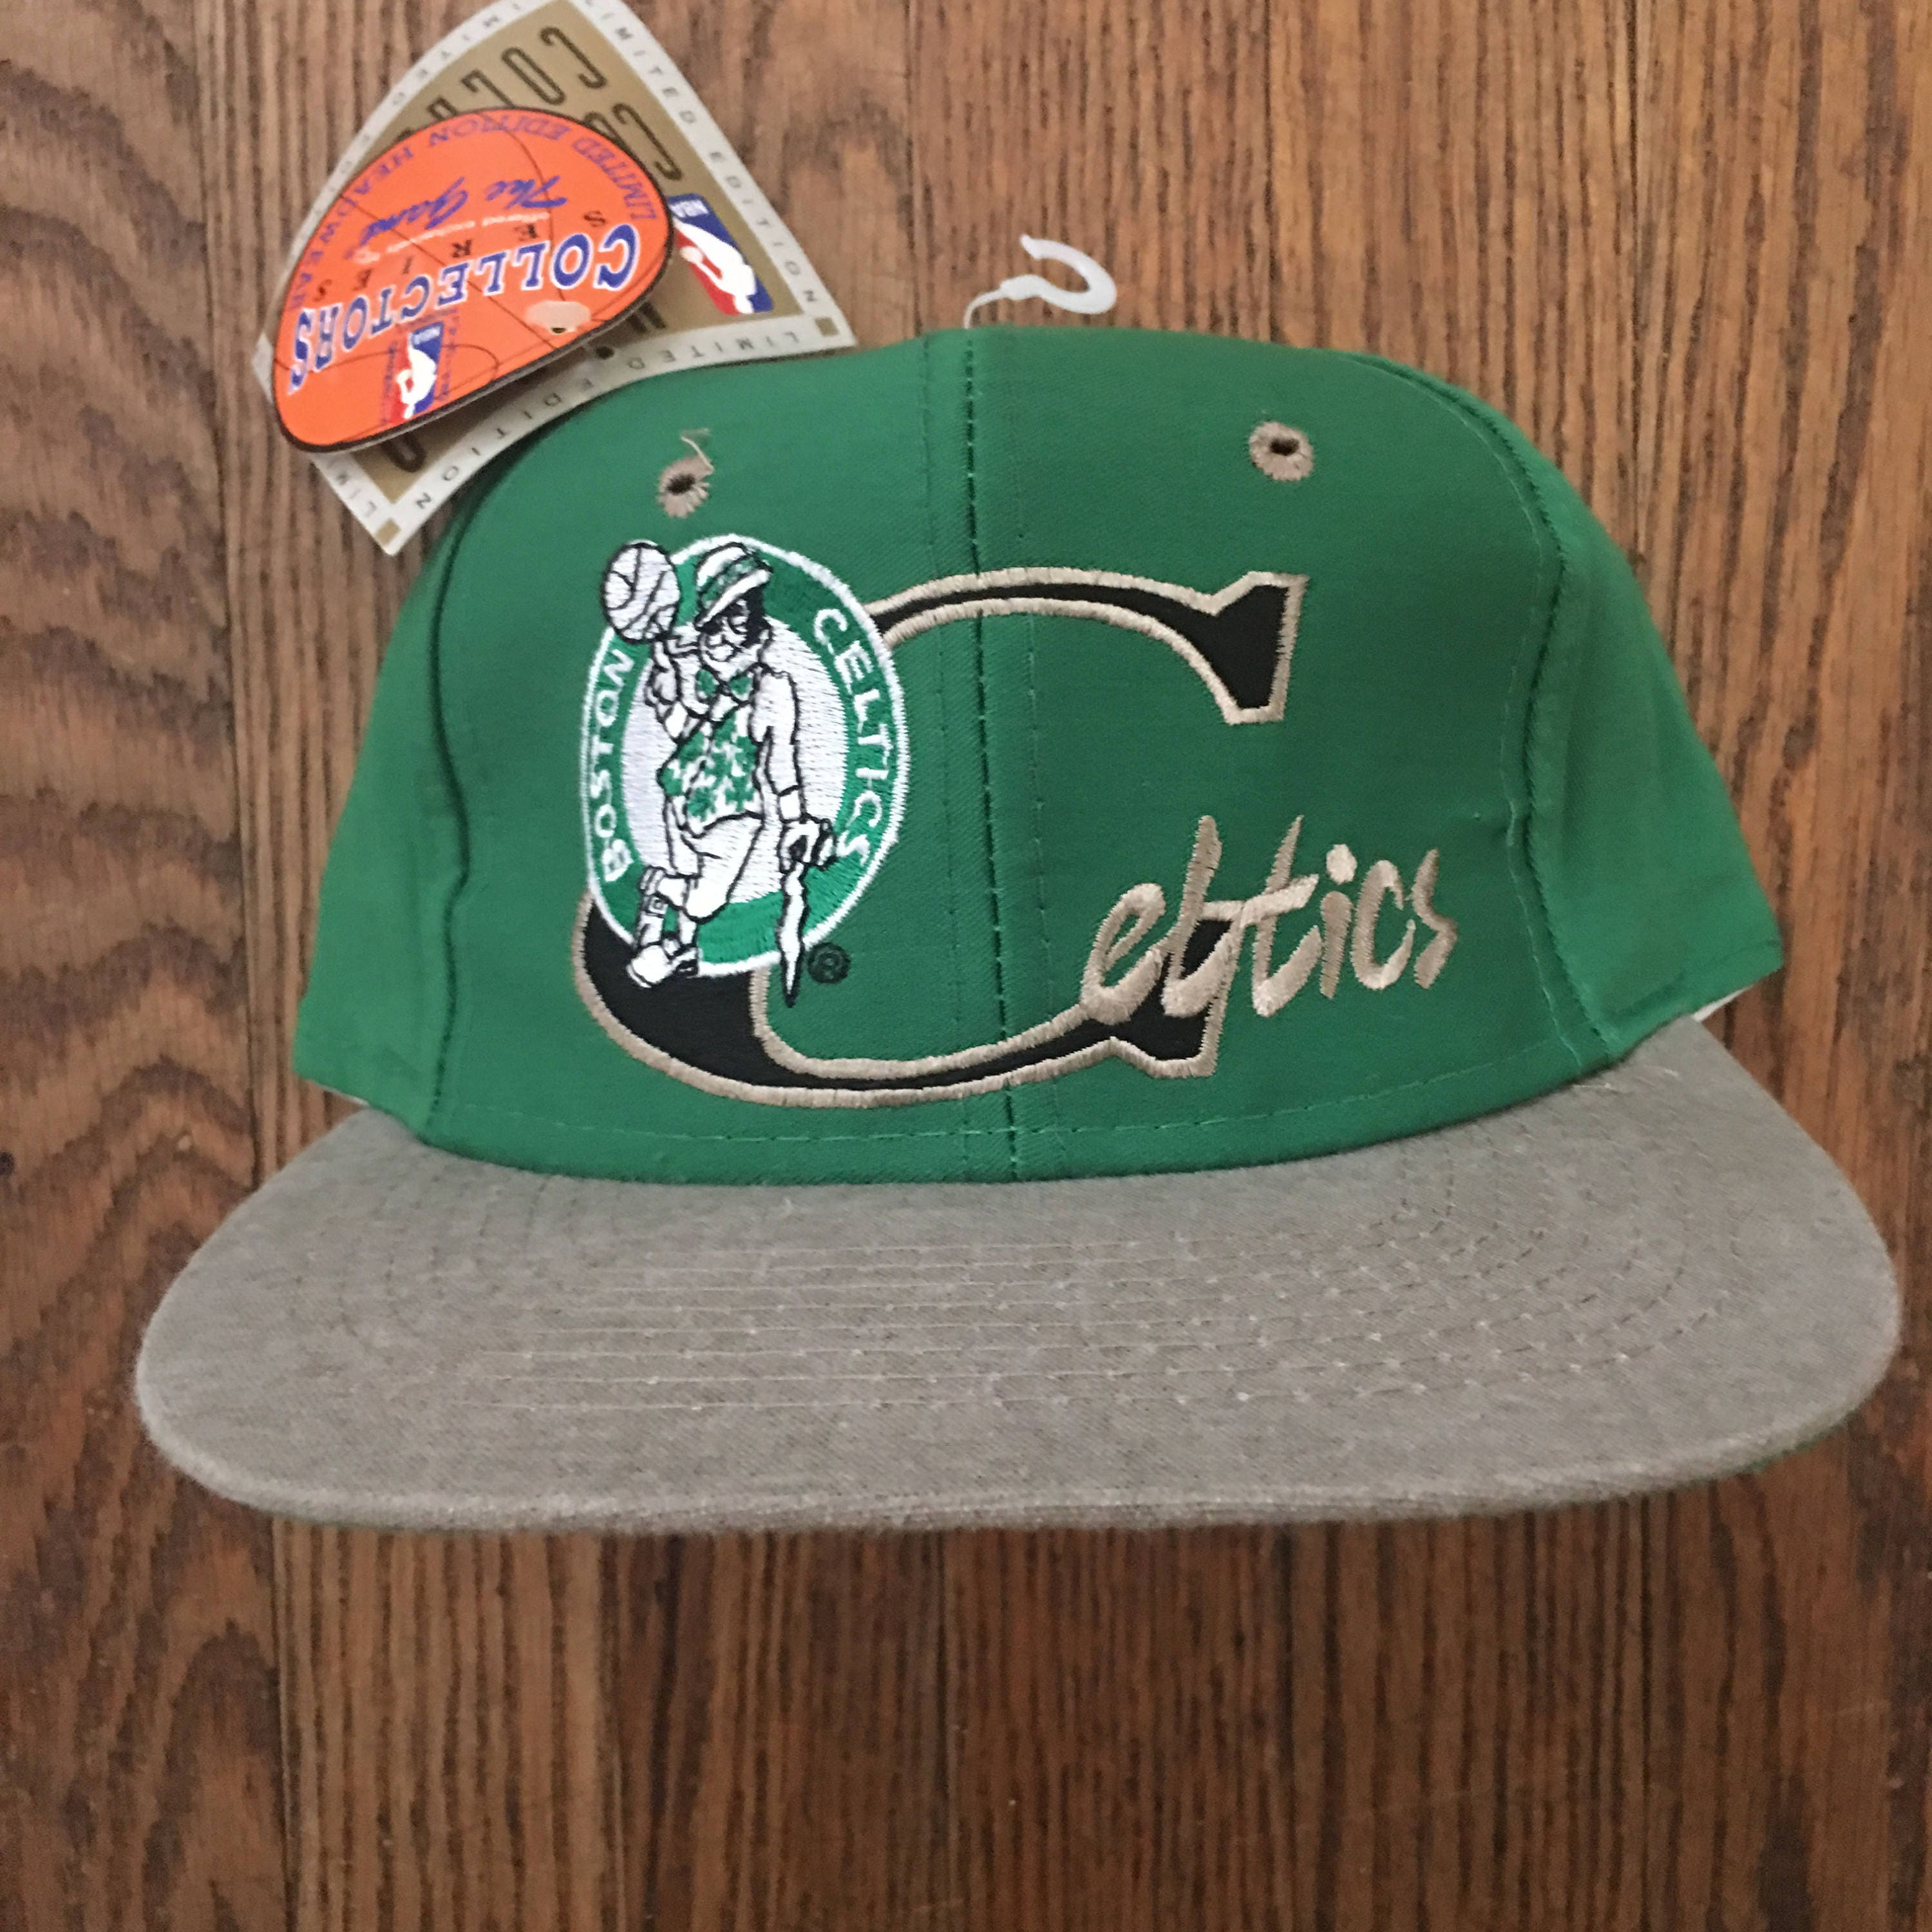 3f70772ff0d Vintage 90s Deadstock The Game Boston Celtics Limited Edition 1025 6000  Basketball NBA Snapback Hat